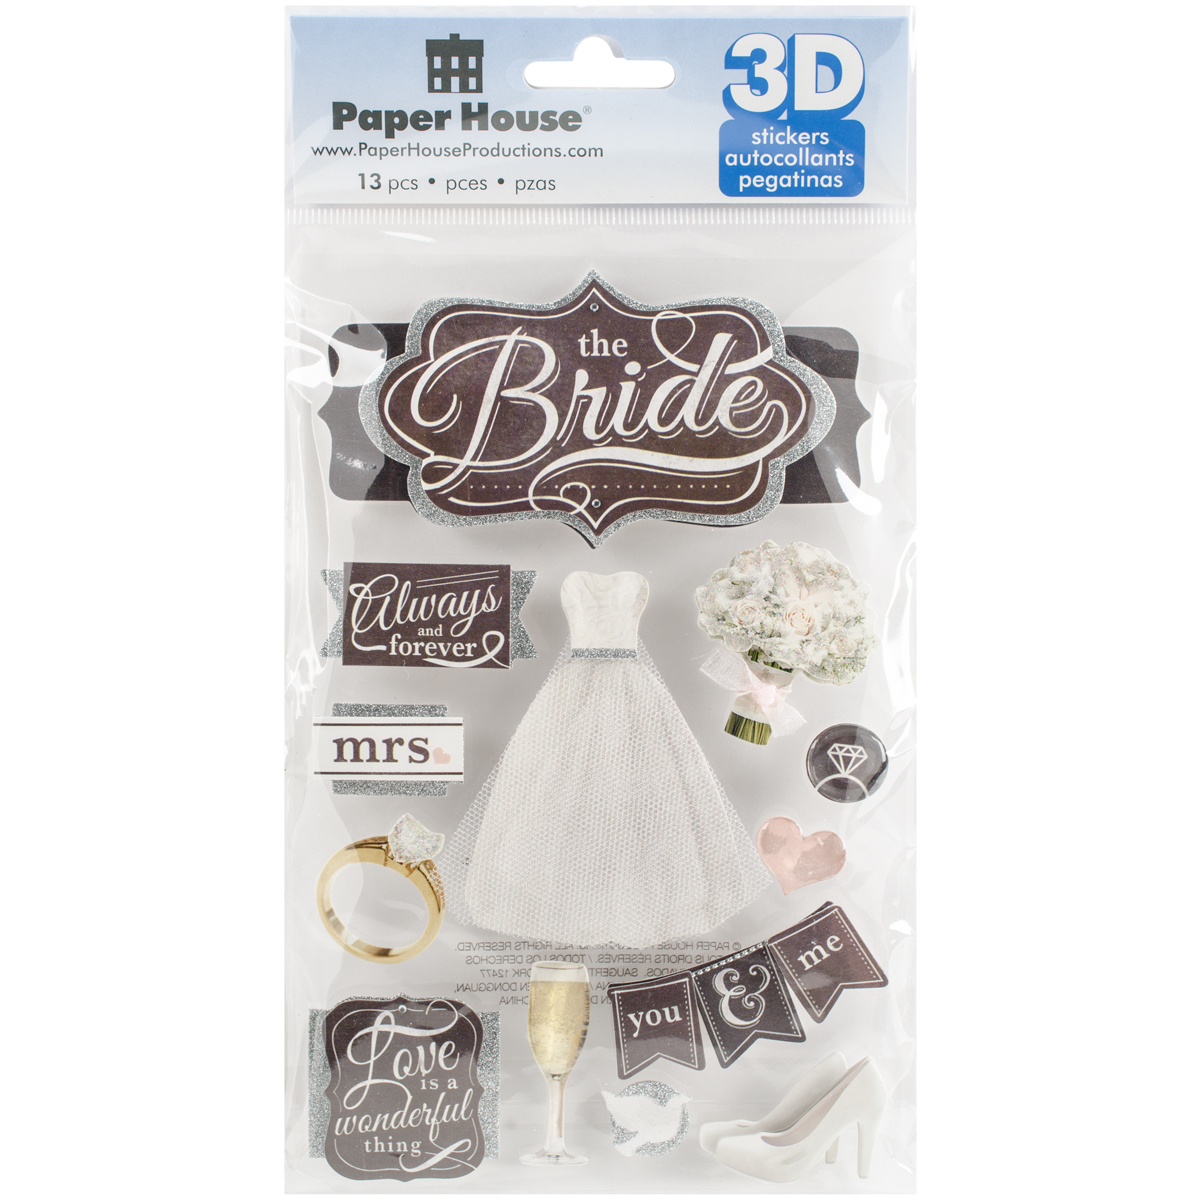 Paper House 3D Stickers 4.5X7.5 -The Bride